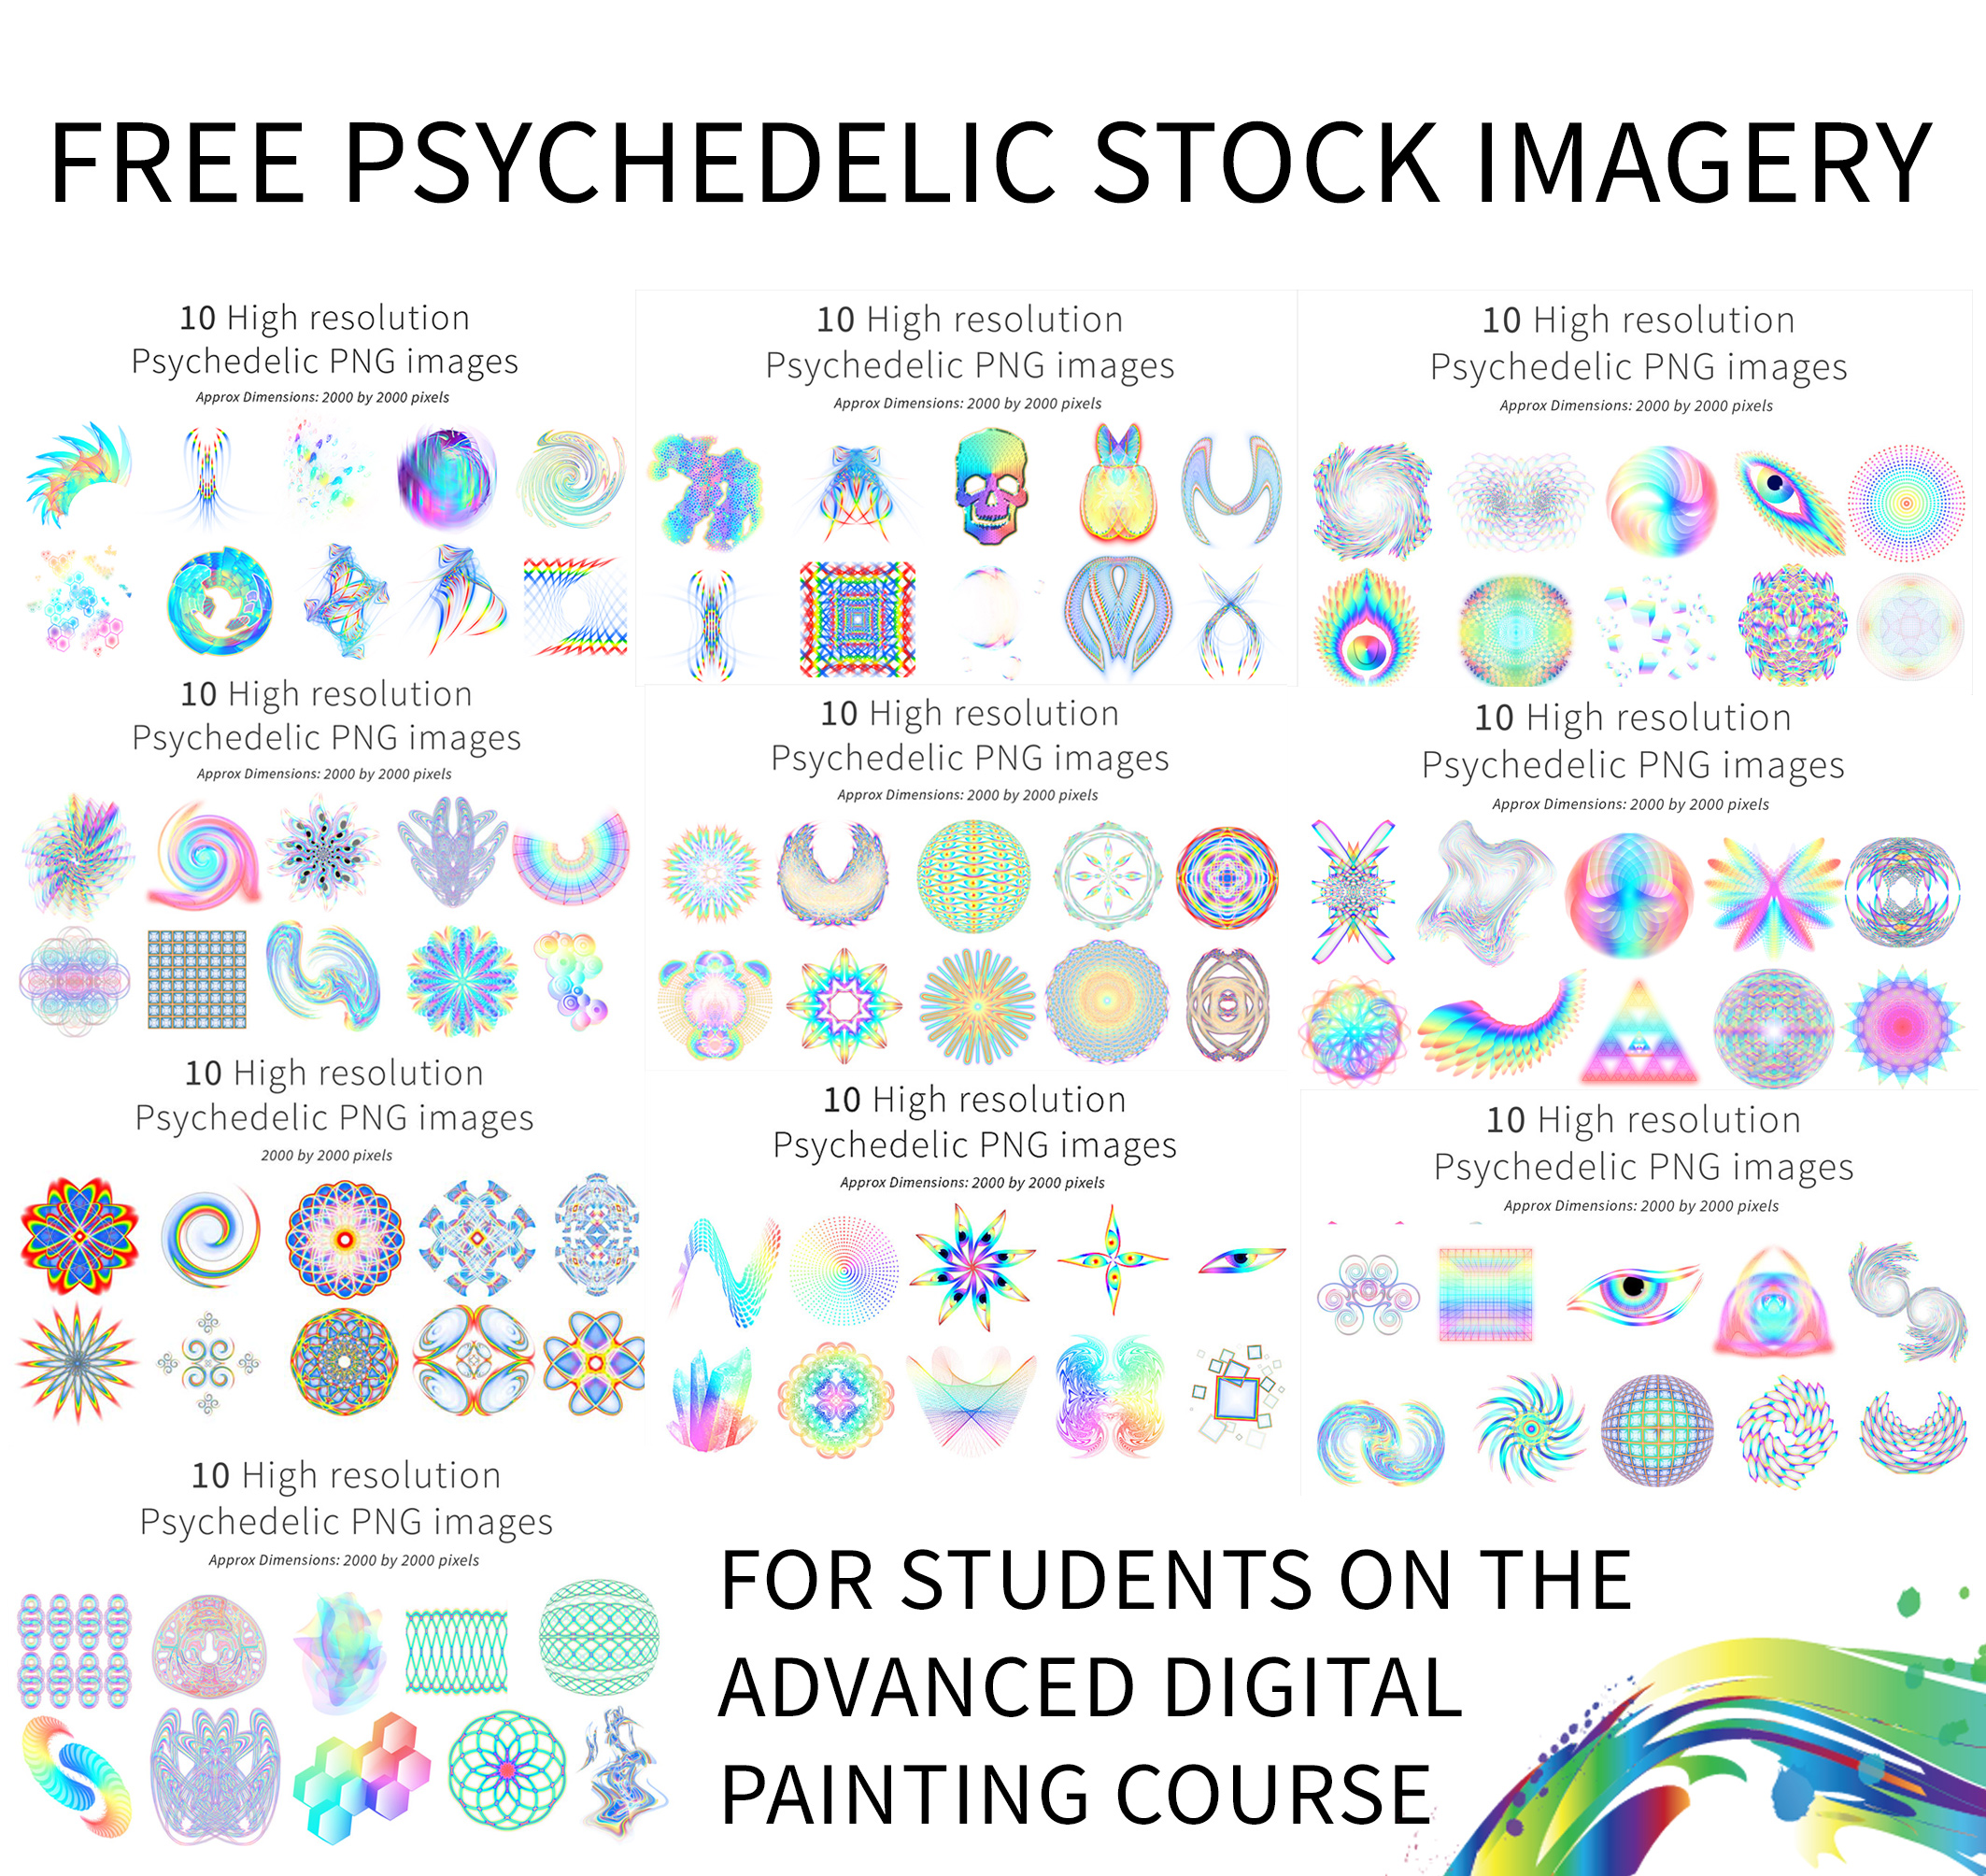 Free psychedelic stock imagery - Digital Visionary Art: www.digitalvisionaryart.co.uk/free-psychedelic-stock-imagery